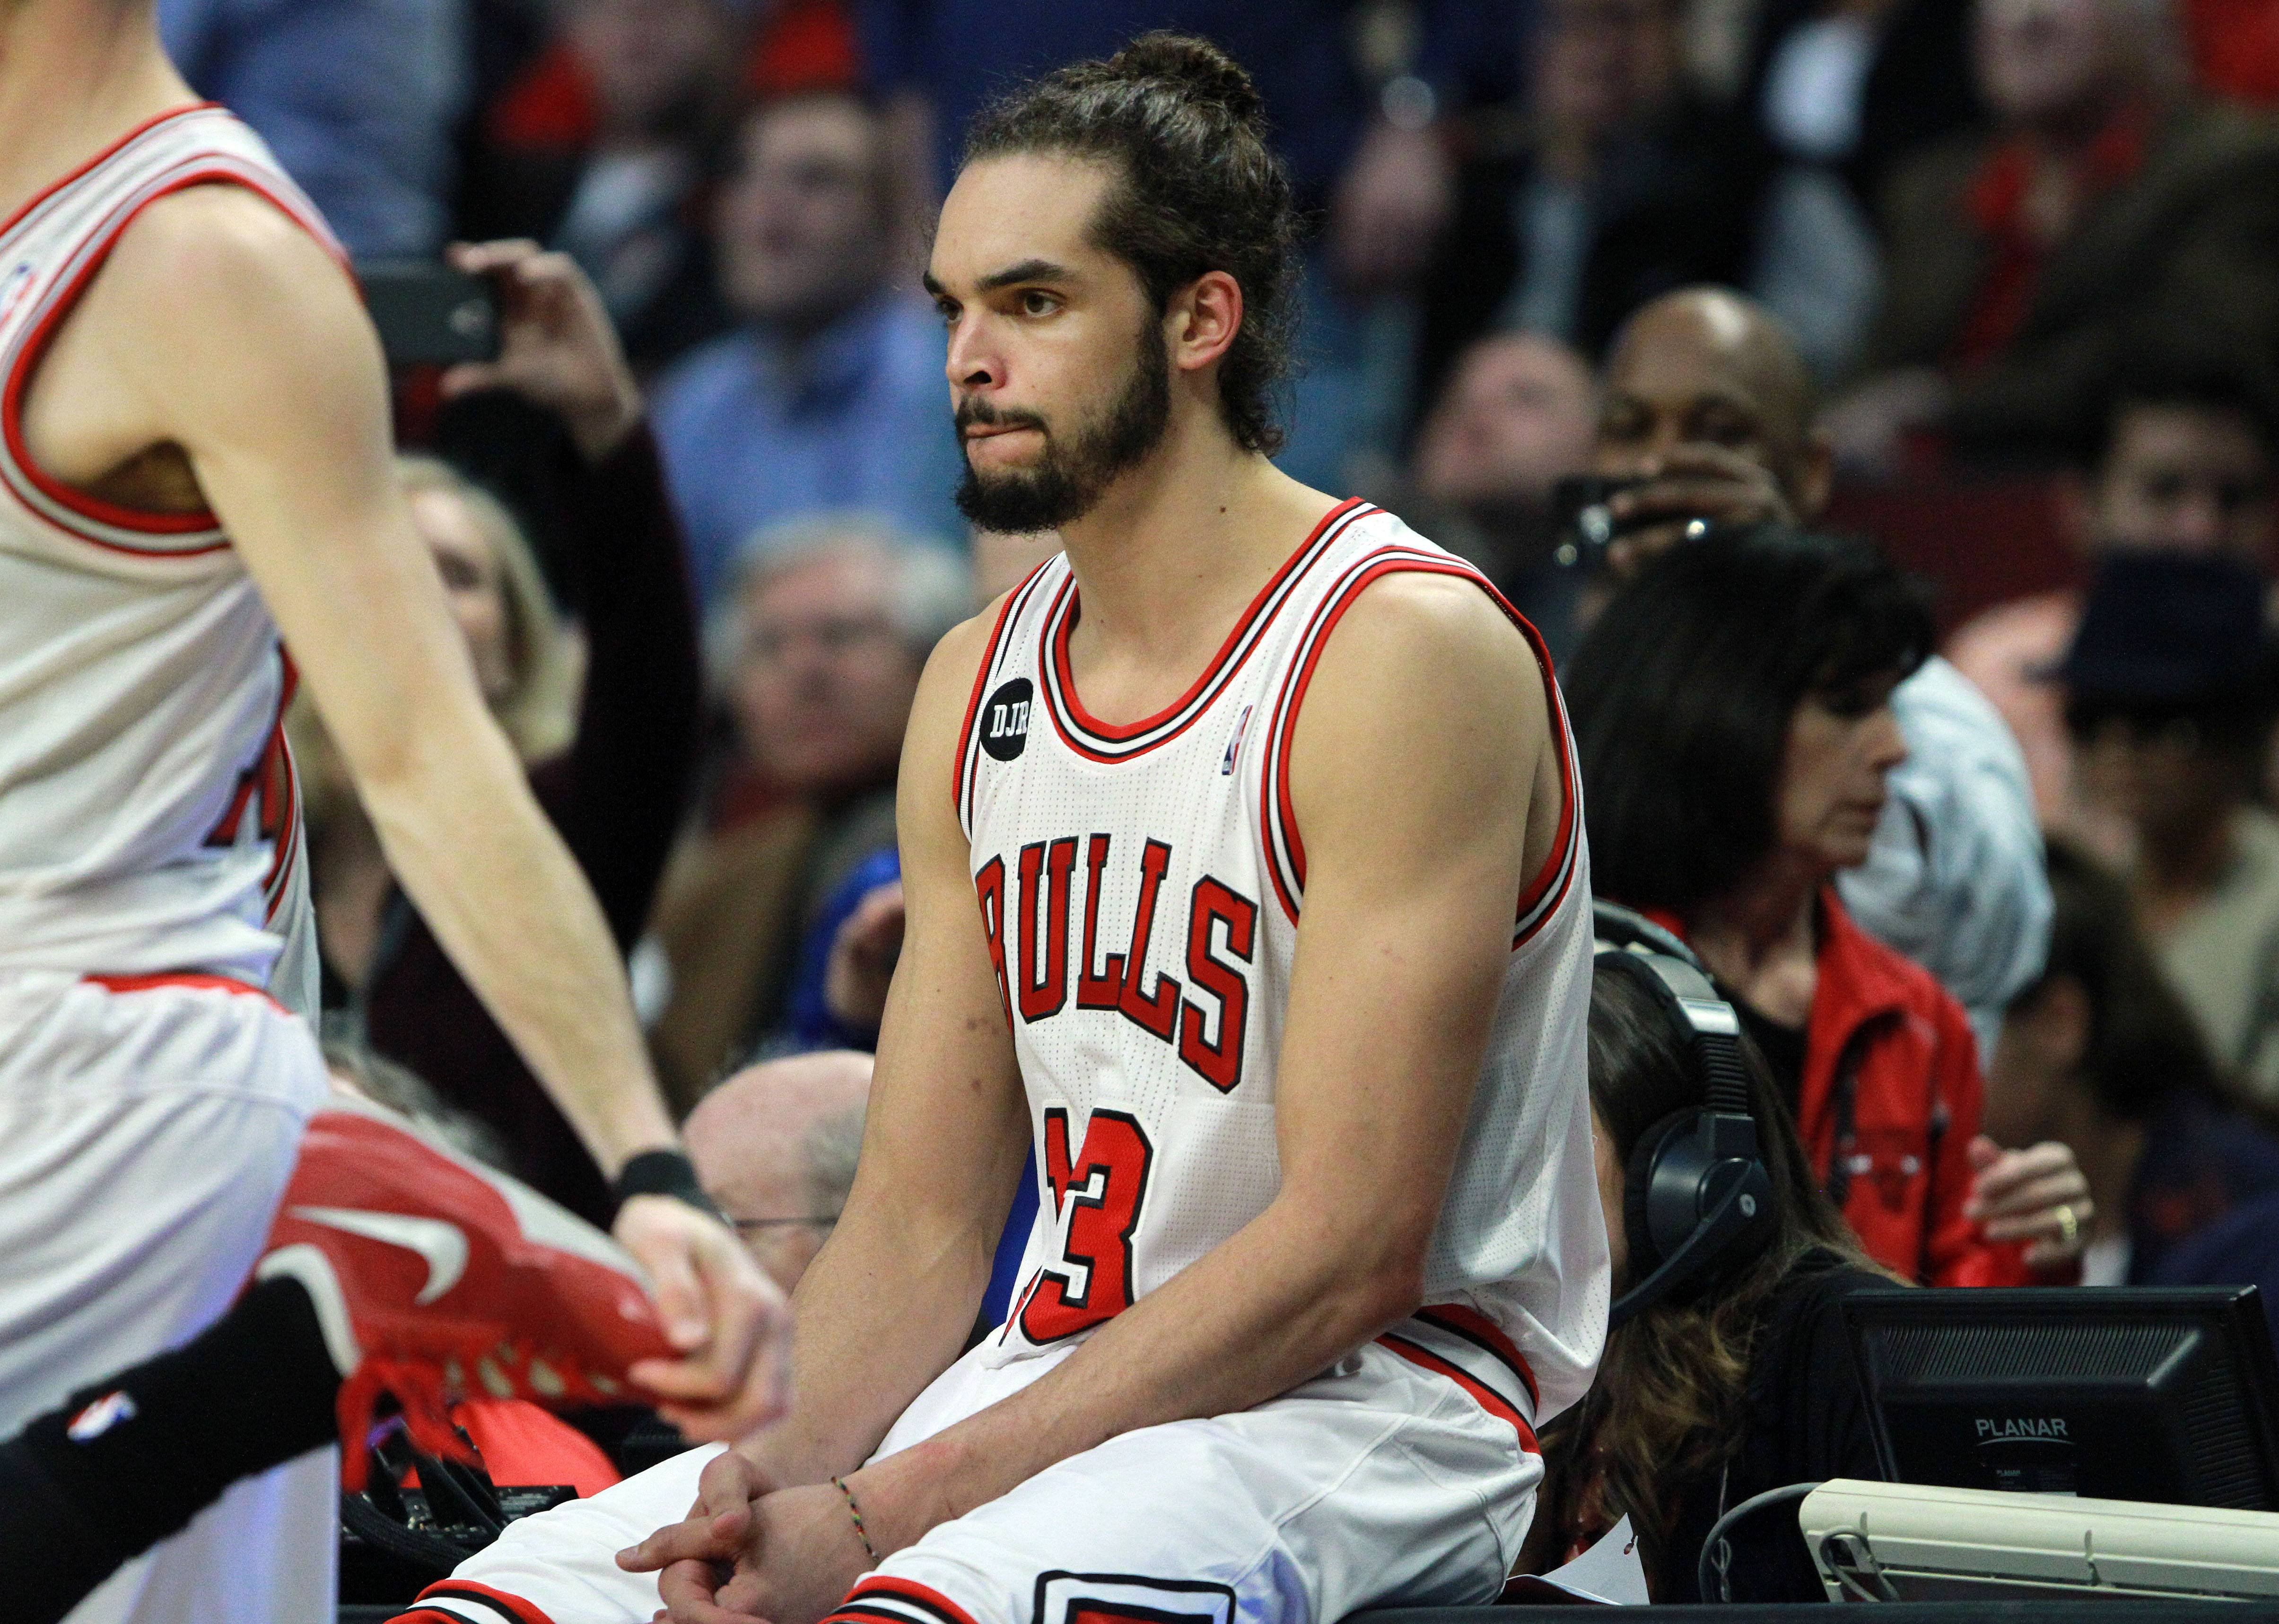 Multiple sources are reporting that Joakim Noah will almost certainly be joining the New York Knicks after free agency begins, with a salary expected to be about $18 million per year.